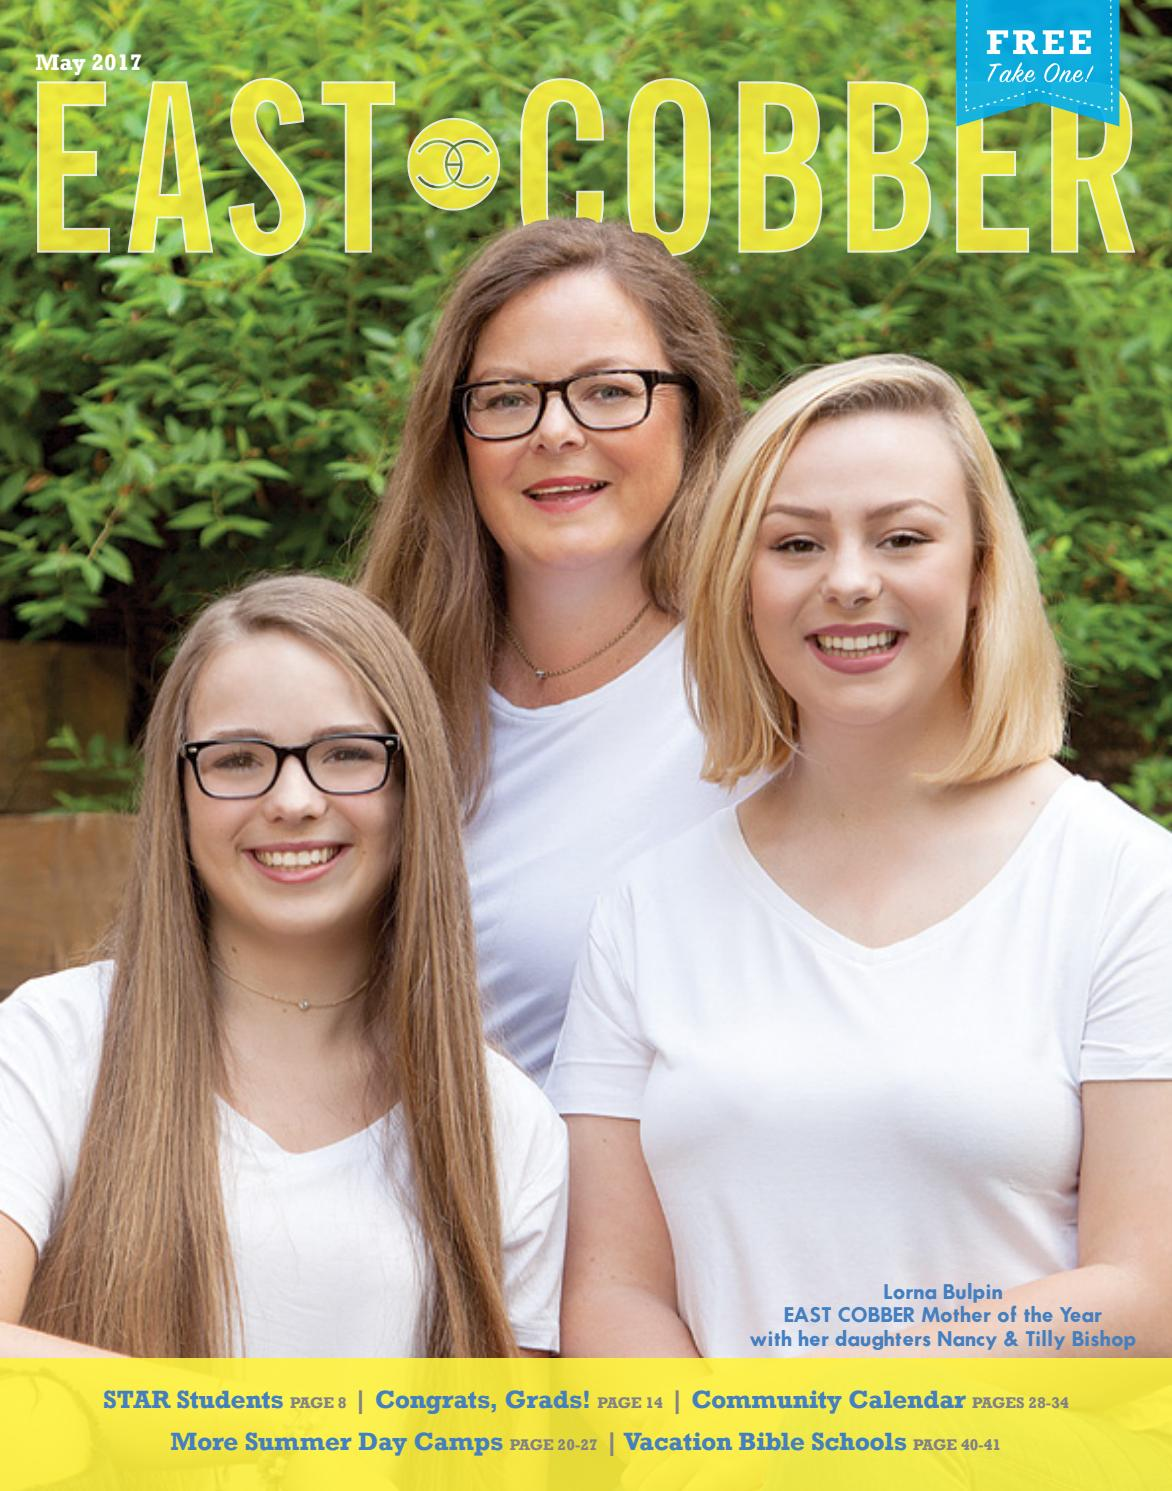 May 2017 EAST COBBER by EAST COBBER Magazine - issuu